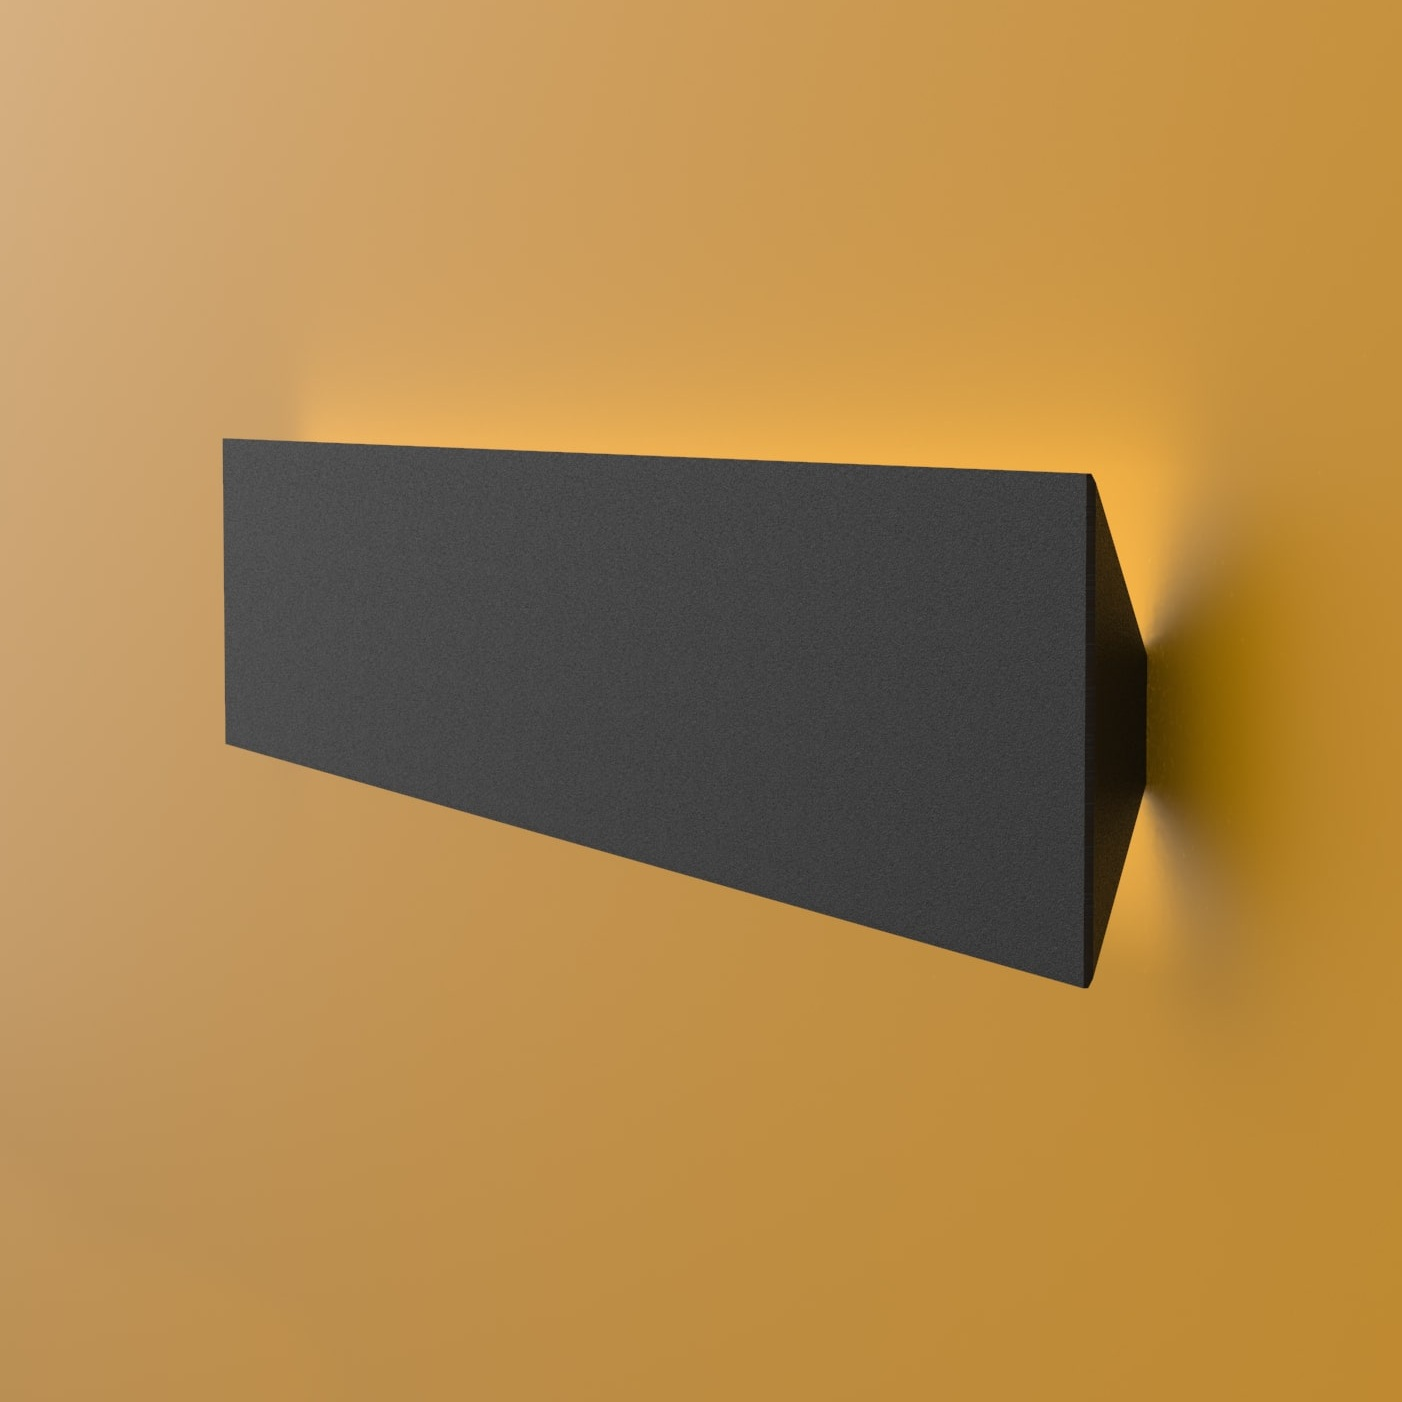 High visual comfort - When used as a Wall luminaire, the Erie offers an unusual, visually striking illumination. Used as a single unit or a sophisticated system, it is guaranteed to be noticed.